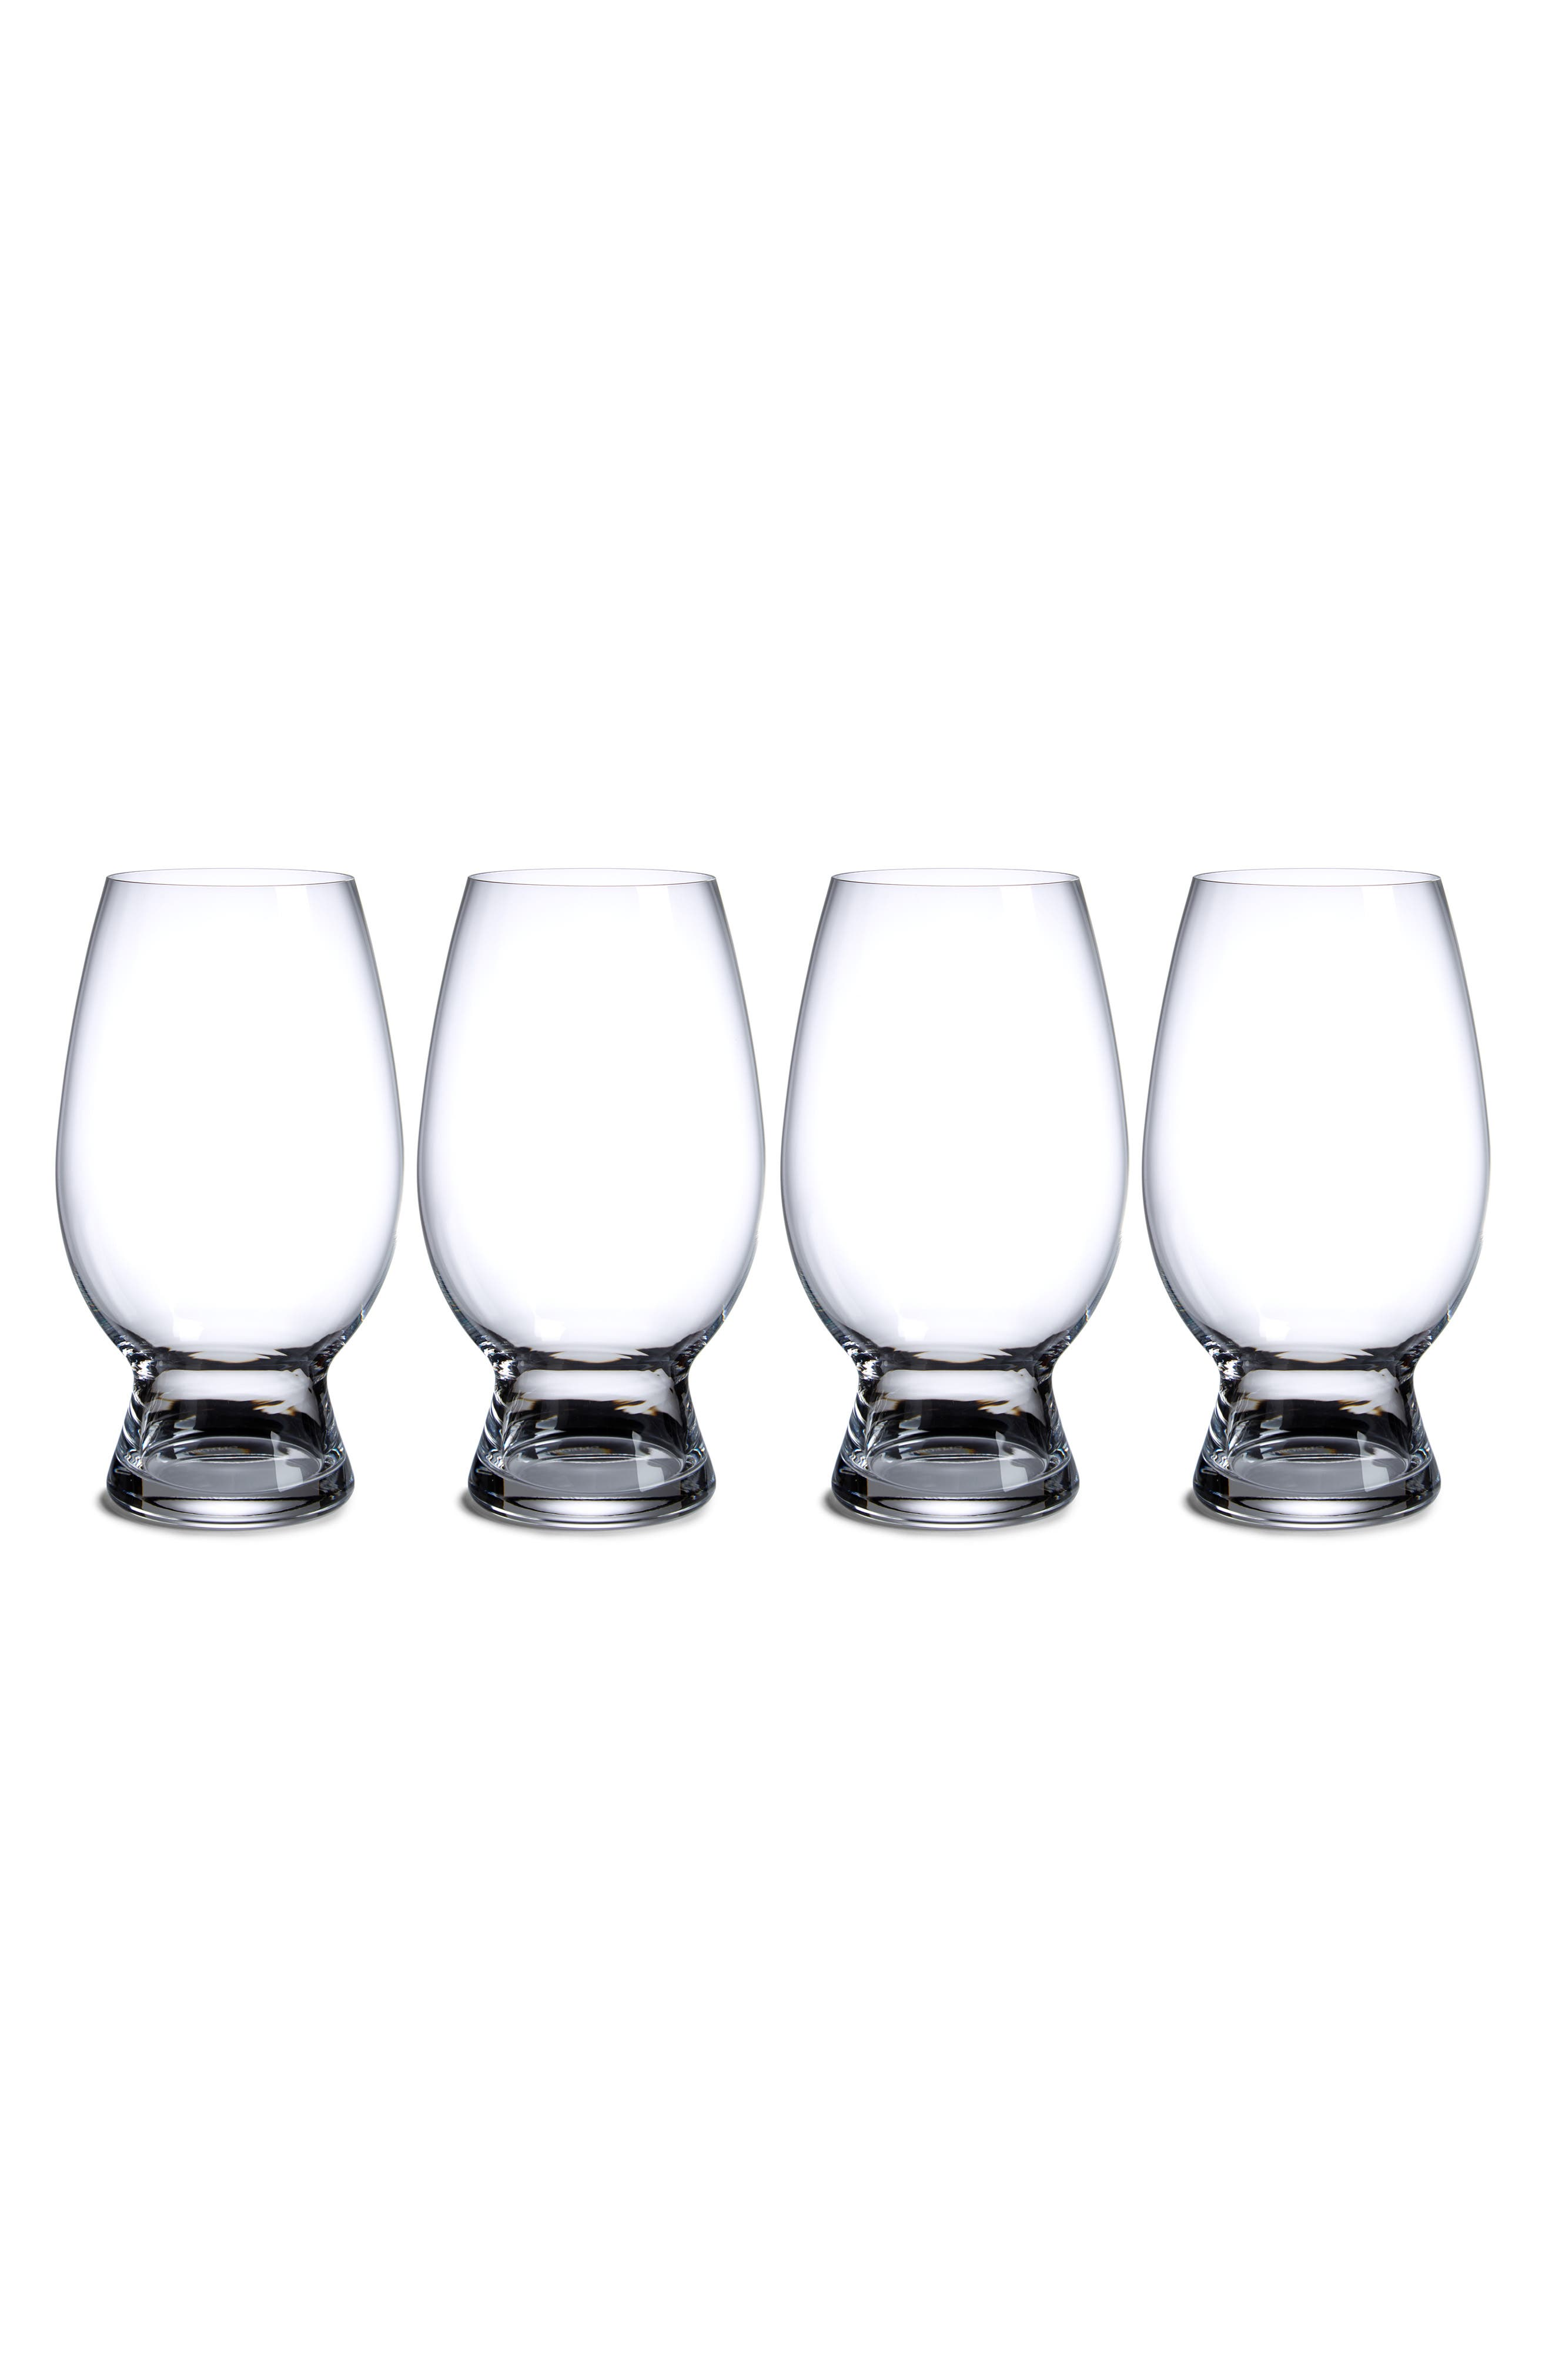 Set of 4 American Wheat Beer Glasses,                             Main thumbnail 1, color,                             Clear